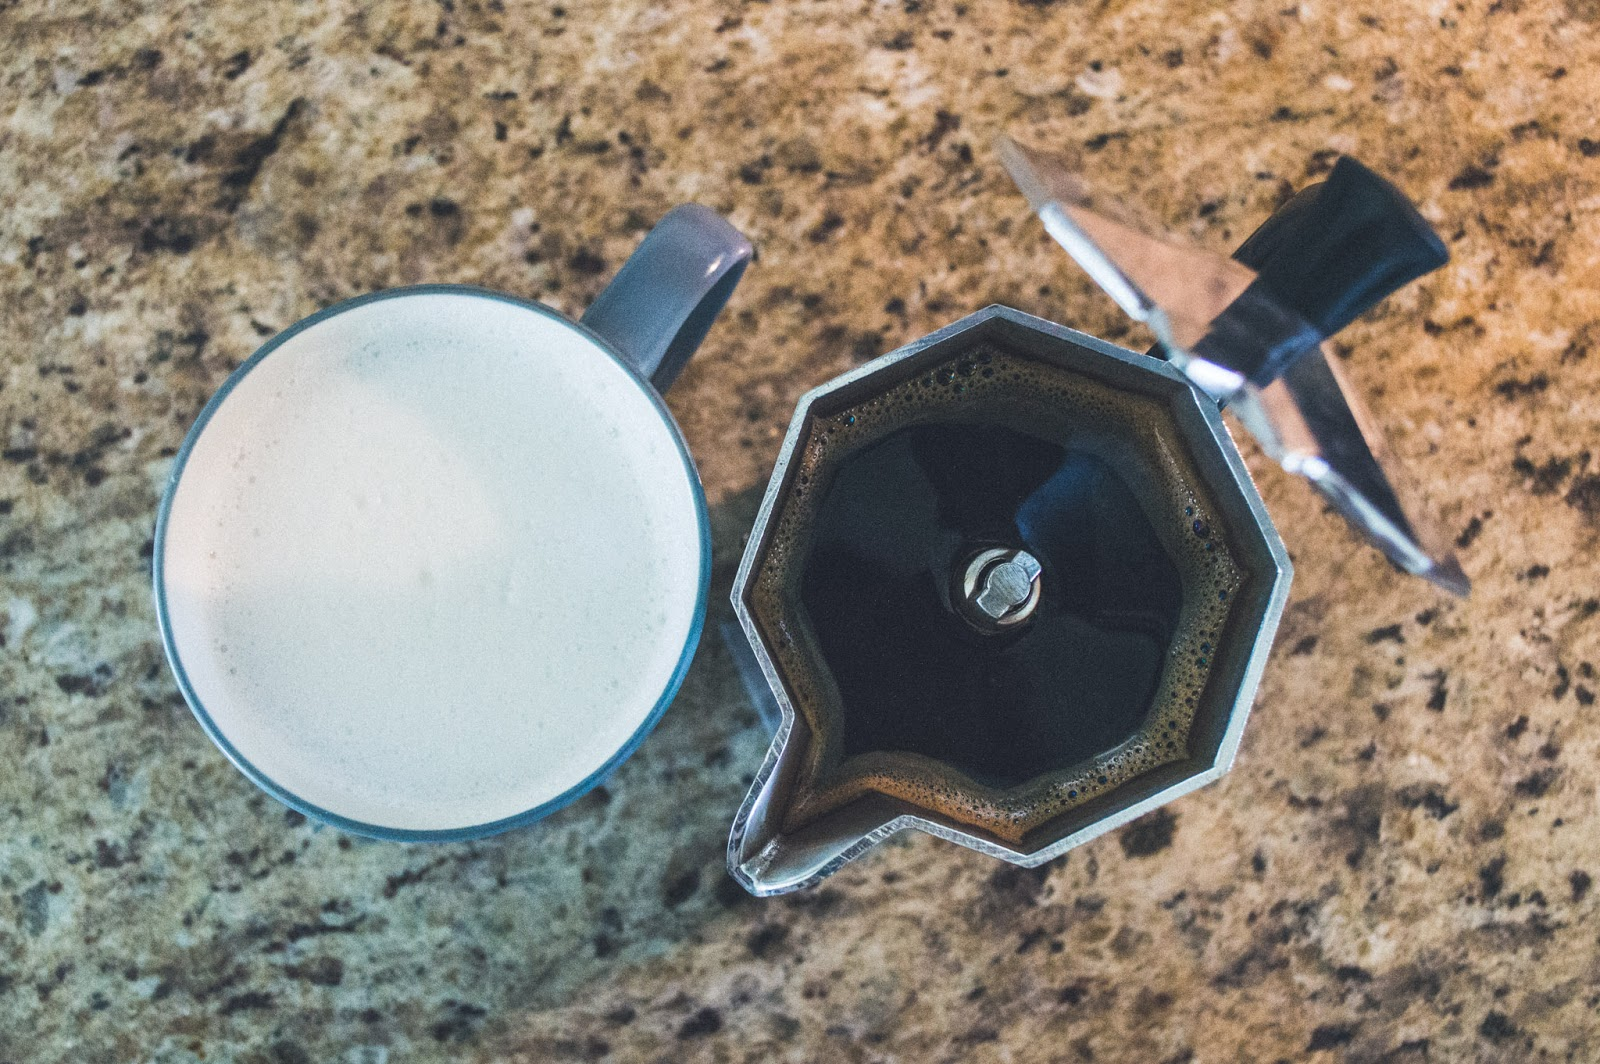 frothed almond milk in a mug and brewed coffee in moka pot